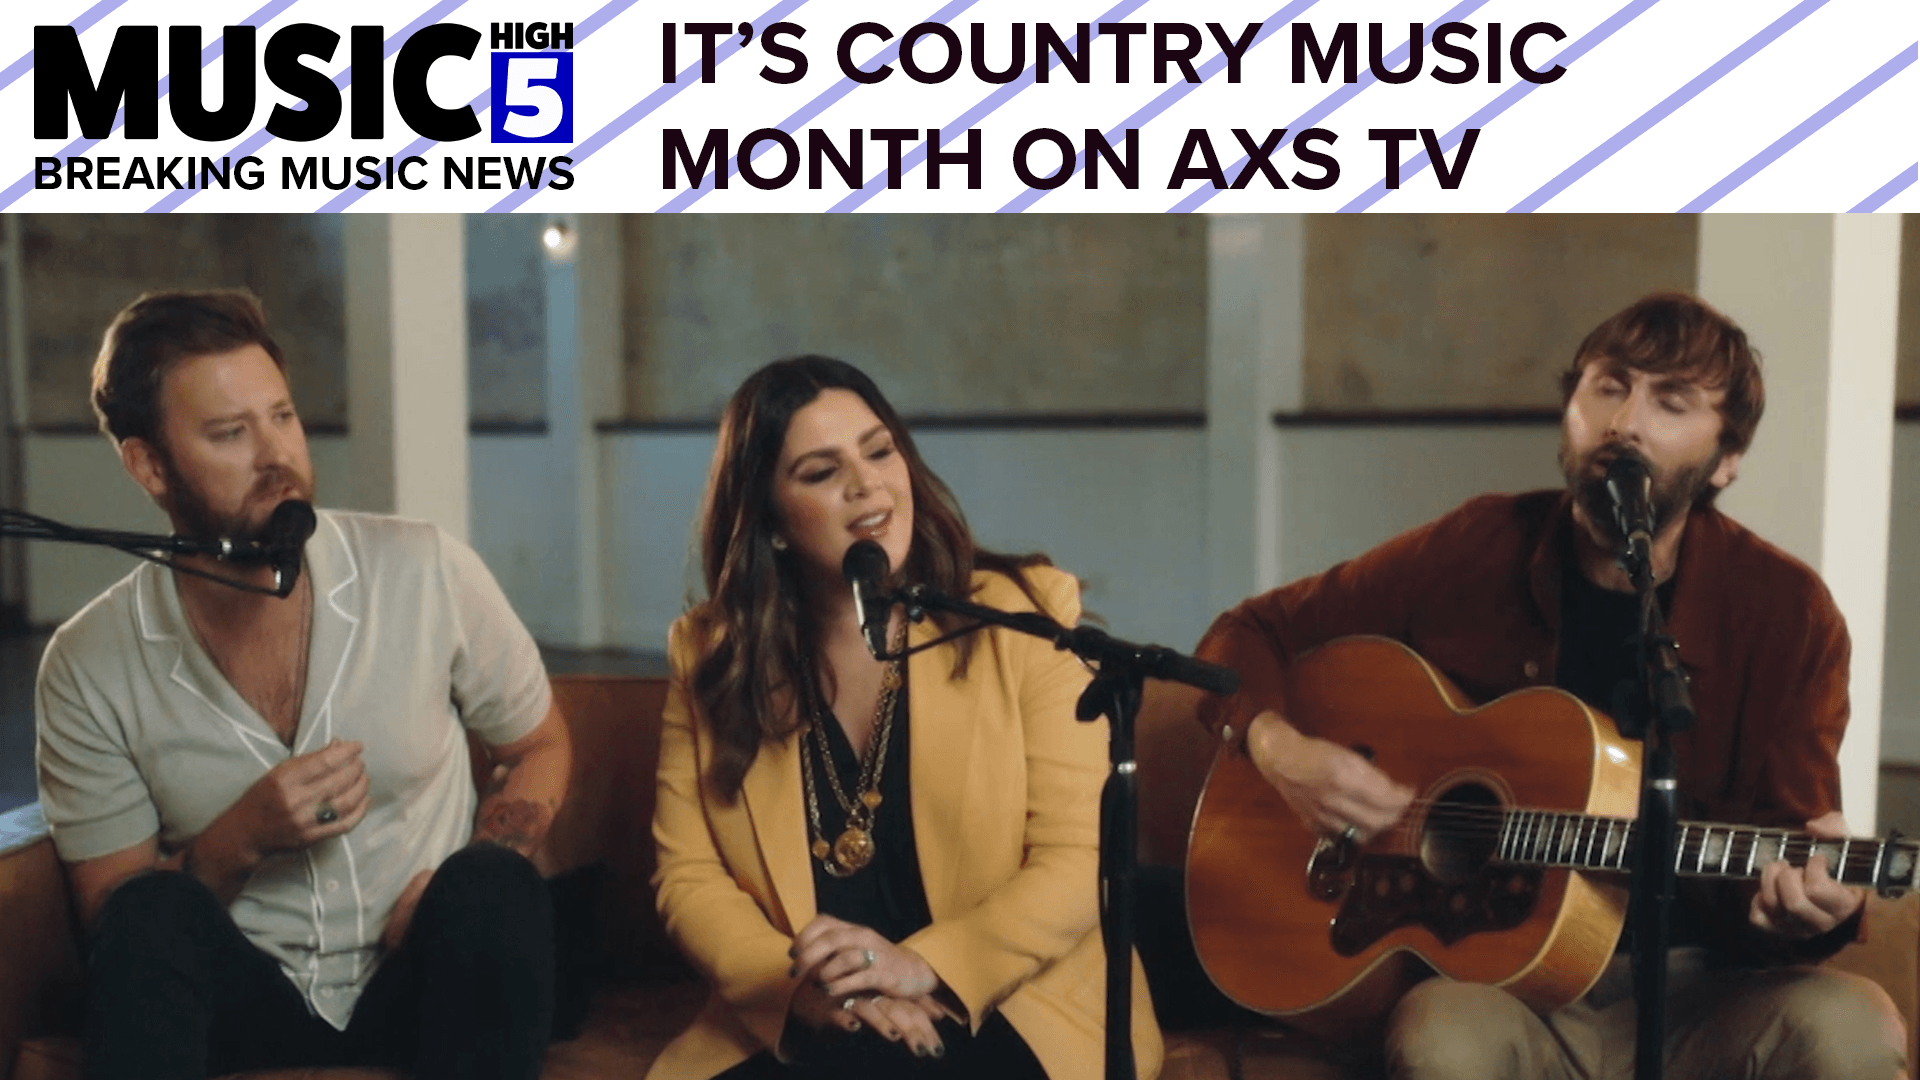 Country Music Month on AXS TV | Music High 5